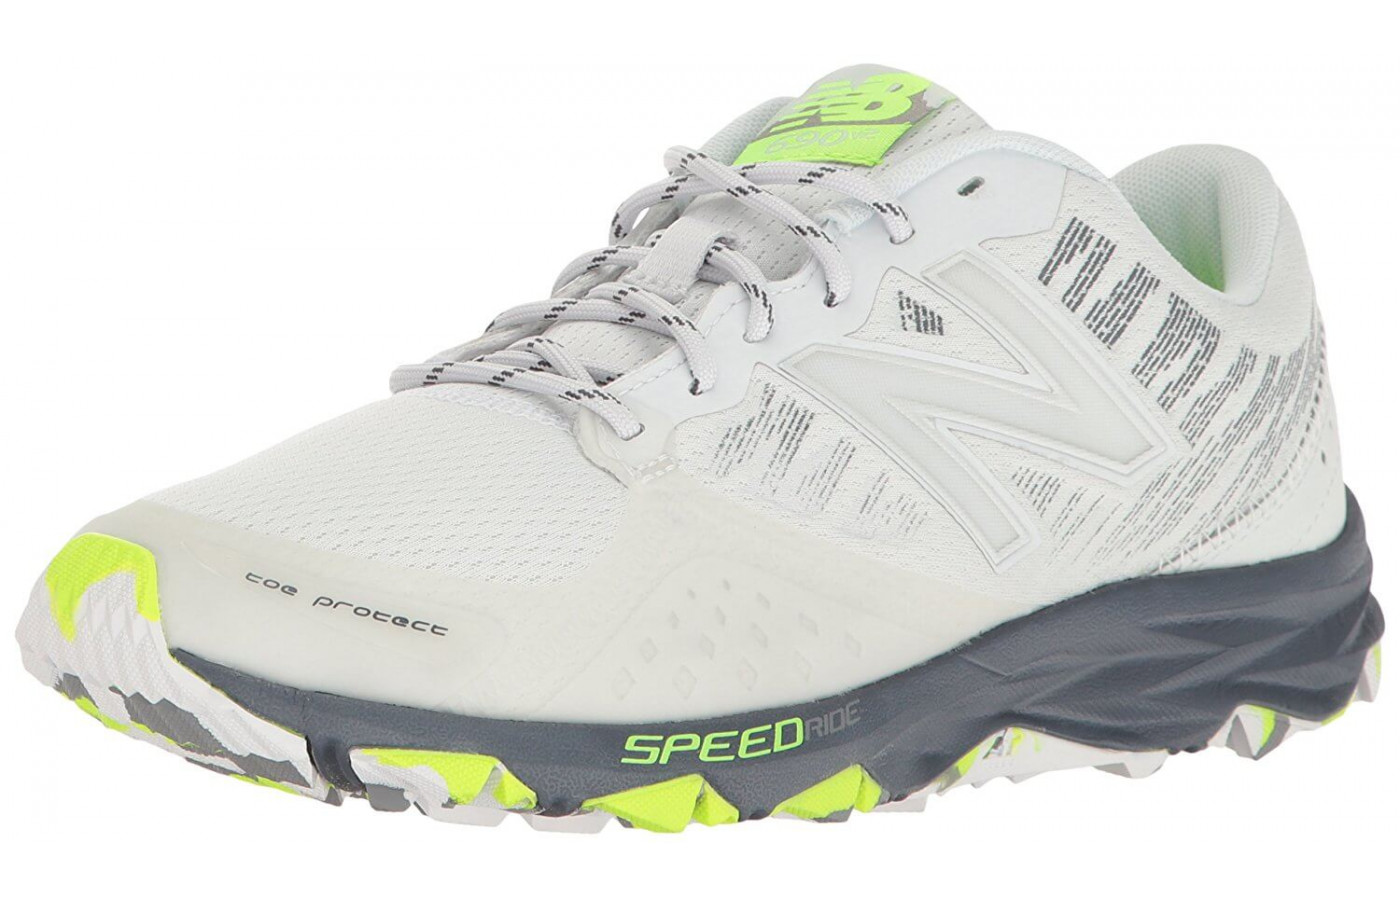 The 690v2 Trail is available in a number of vibrant color options